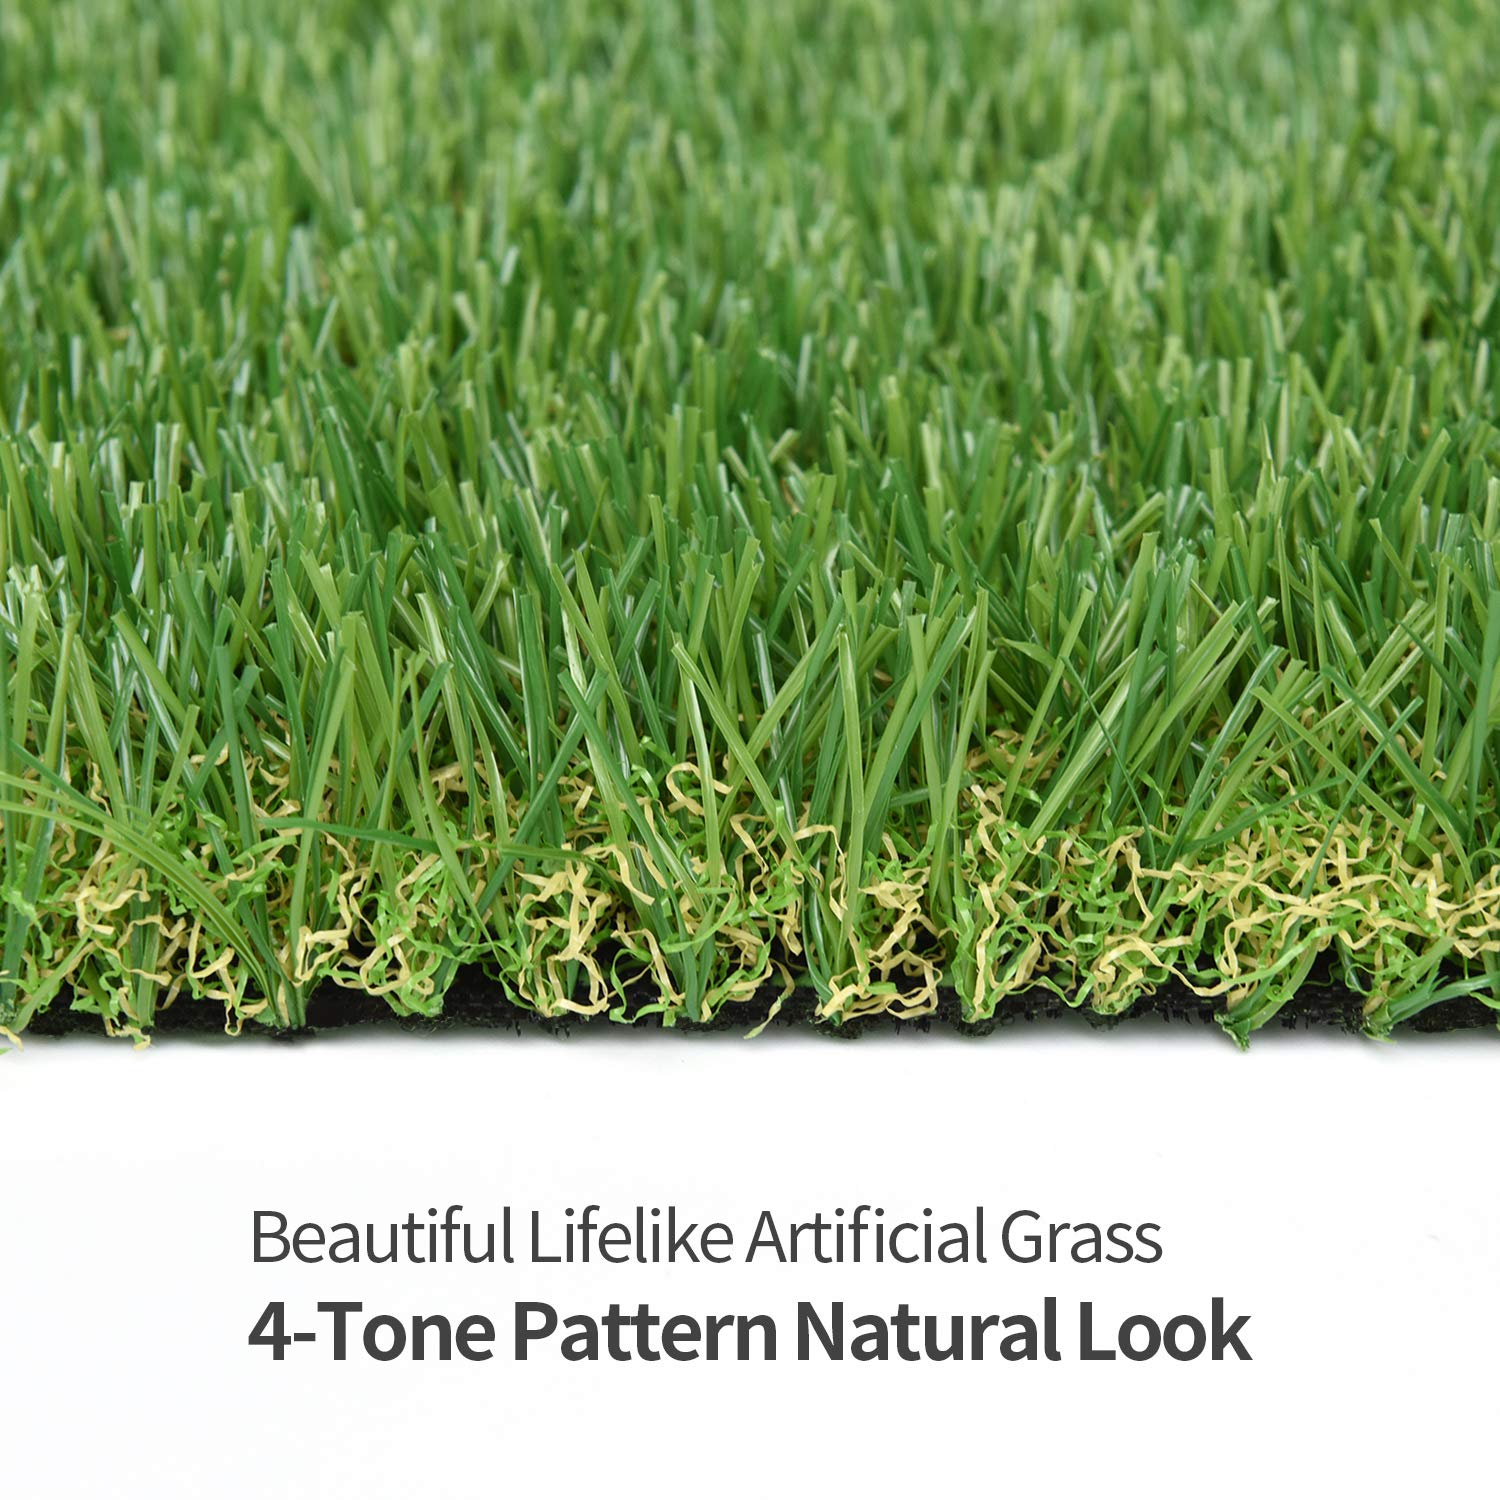 RoundLove Artificial Turf Lawn Fake Grass Indoor Outdoor Landscape Pet Dog Area (40X80 in) by RoundLove (Image #5)